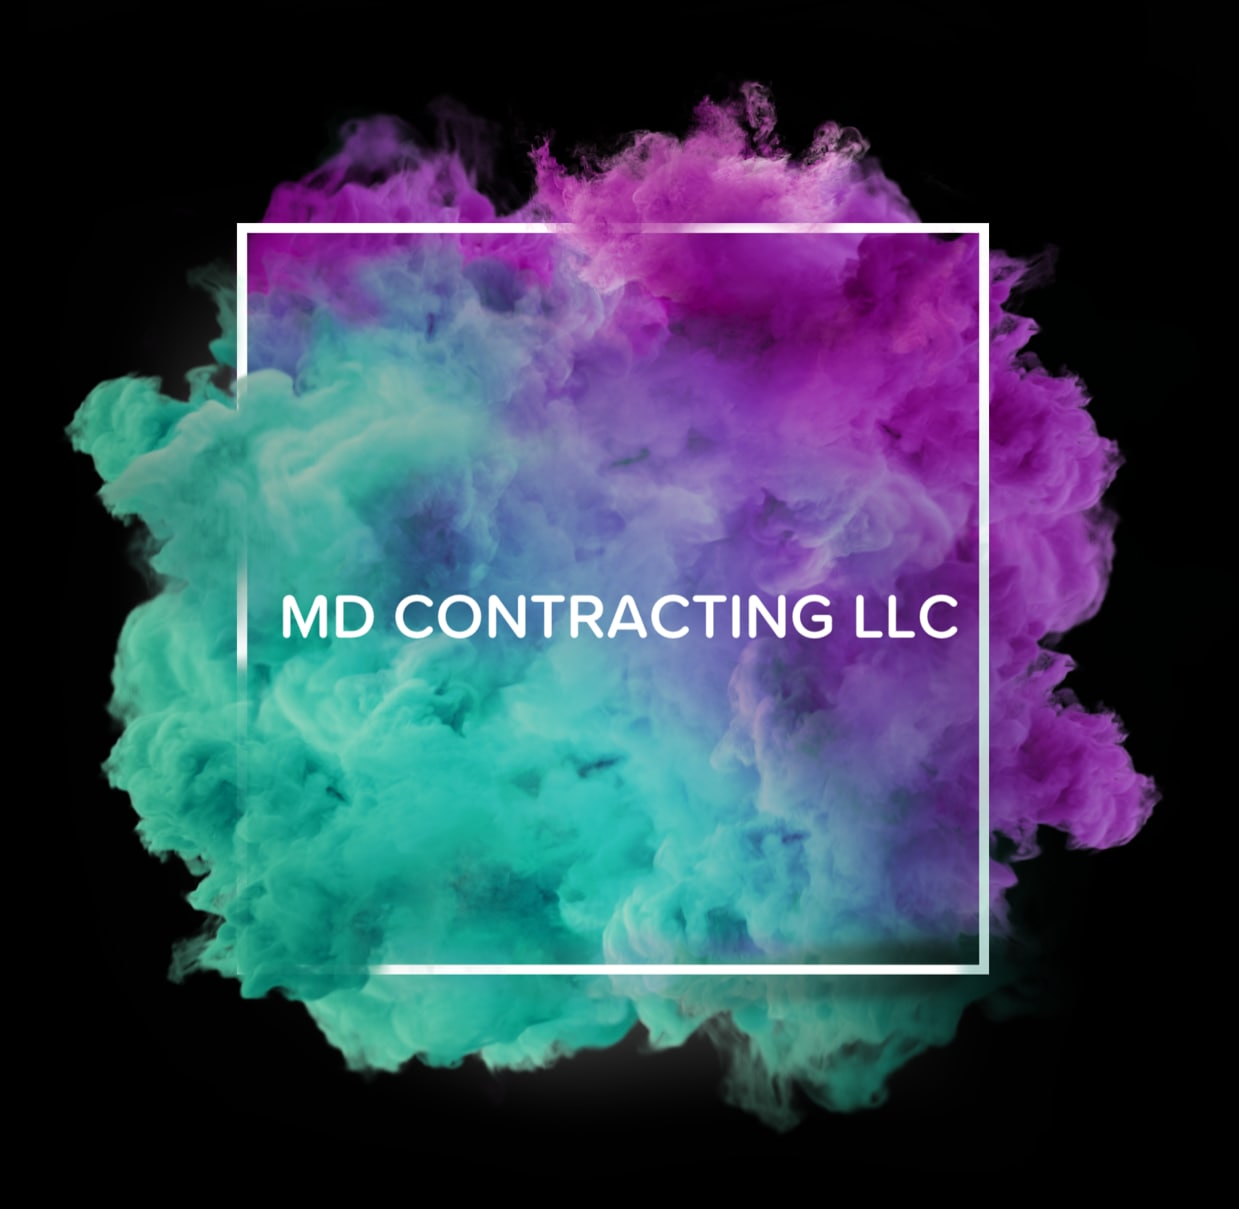 MD Contracting LLC